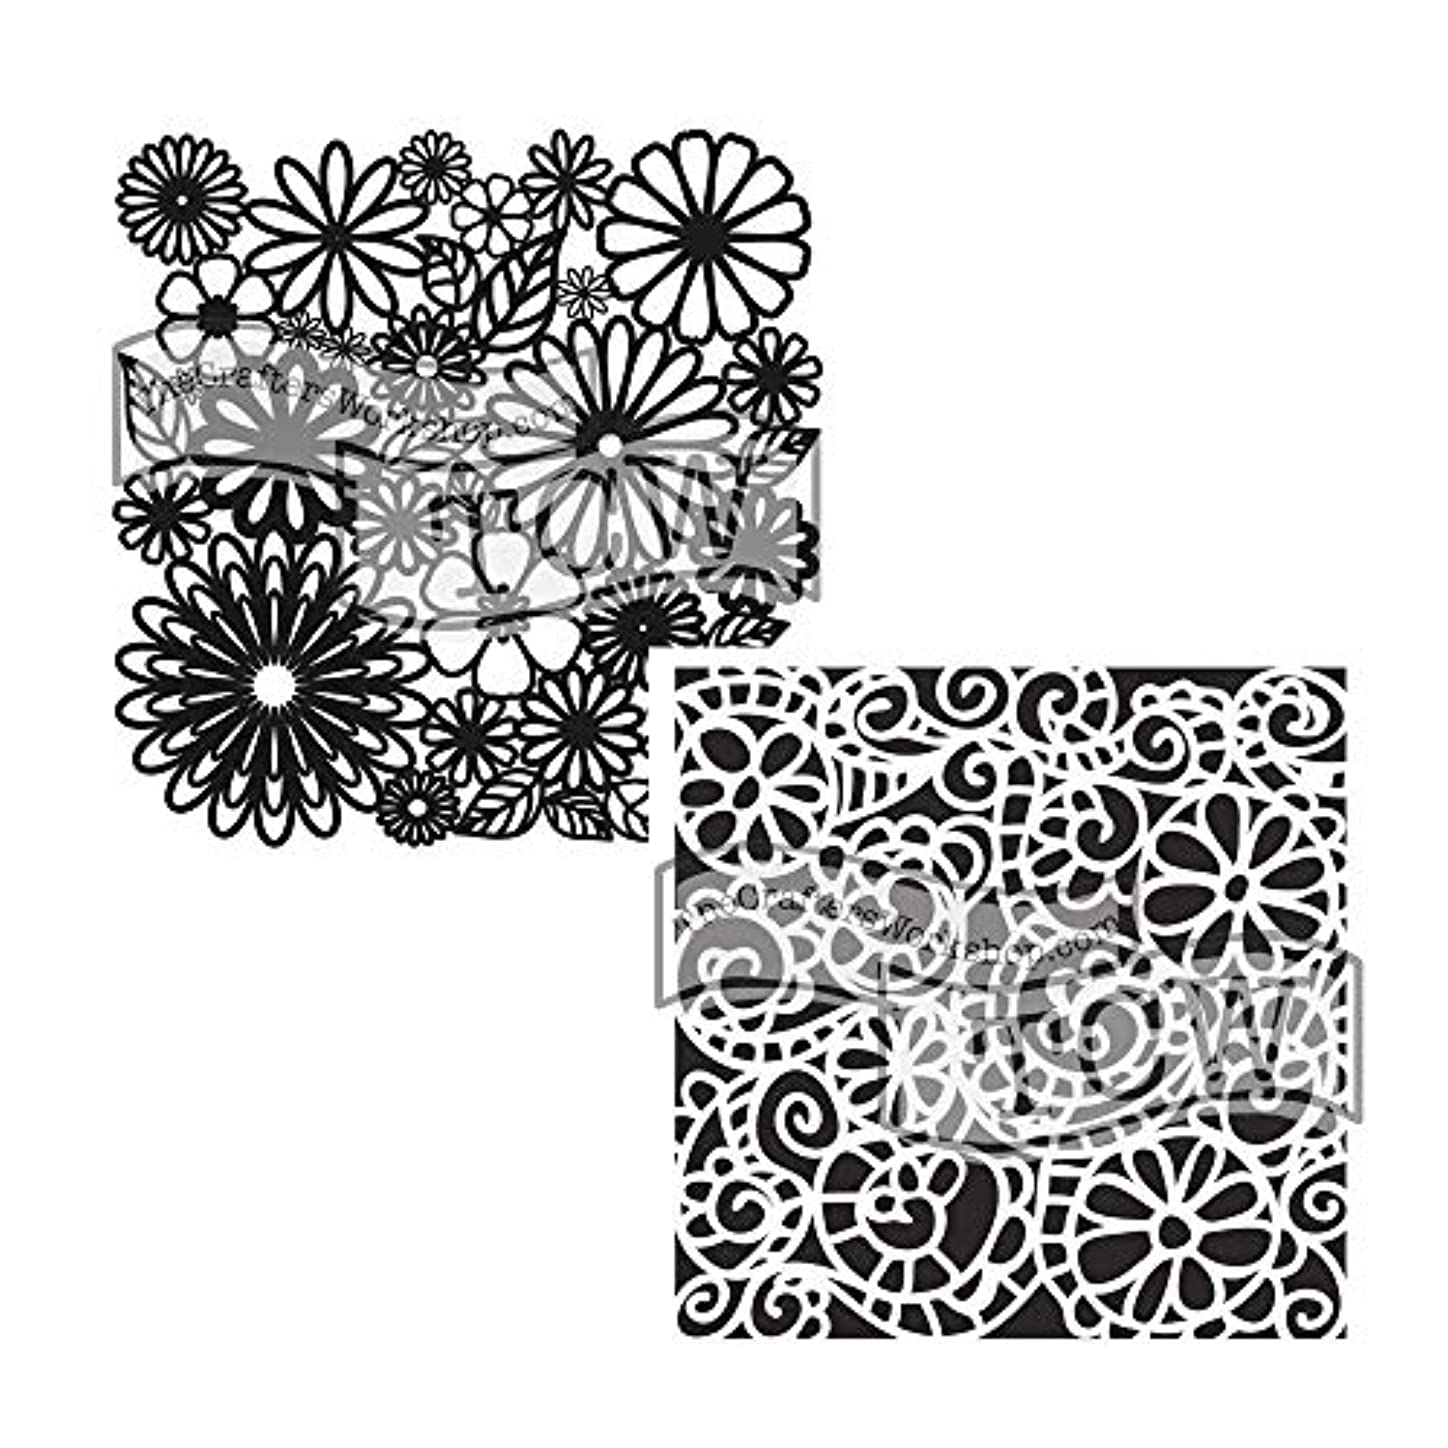 Crafter's Workshop Stencil 2 Pack, Reusable Stenciling Templates for Art Journaling, Mixed Media, and Scrapbooking - TCW157 Flower Frenzy & TCW325 Swirly Garden jnlowns884570